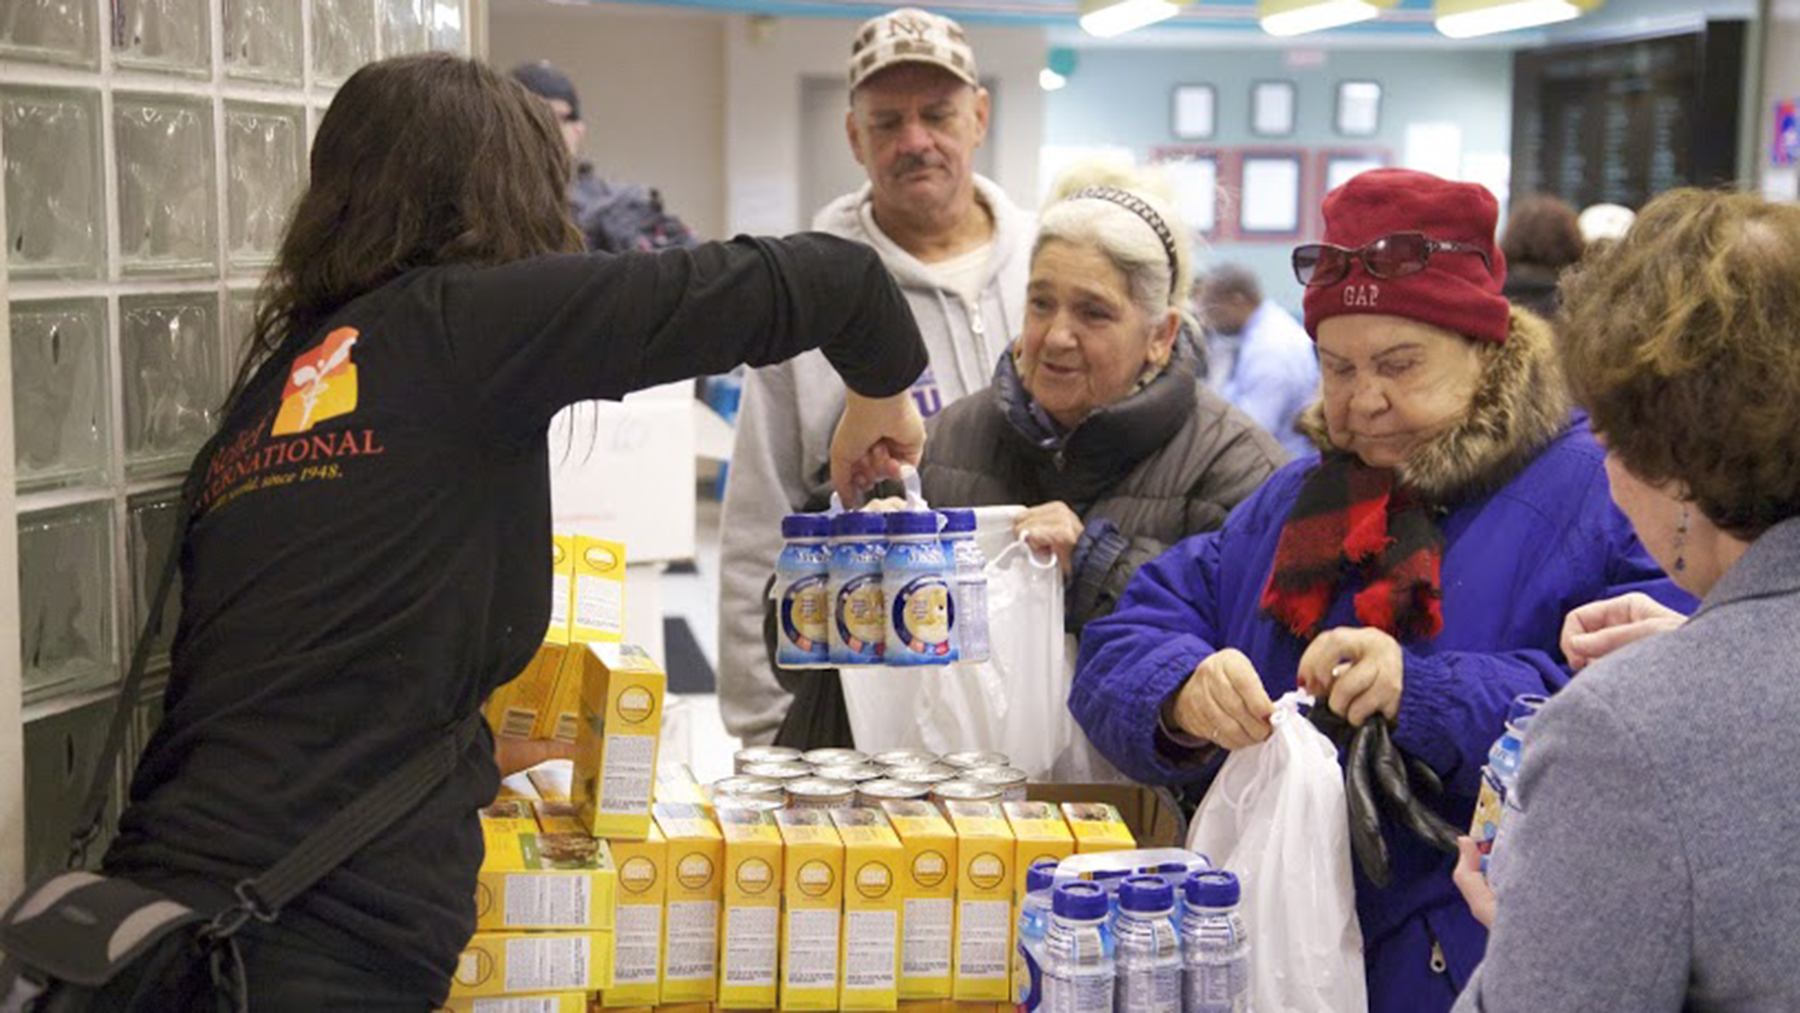 A Direct Relief staff member passes out supplies to people affected by Hurricane Sandy. (Photo by William Vazquez for Direct Relief)